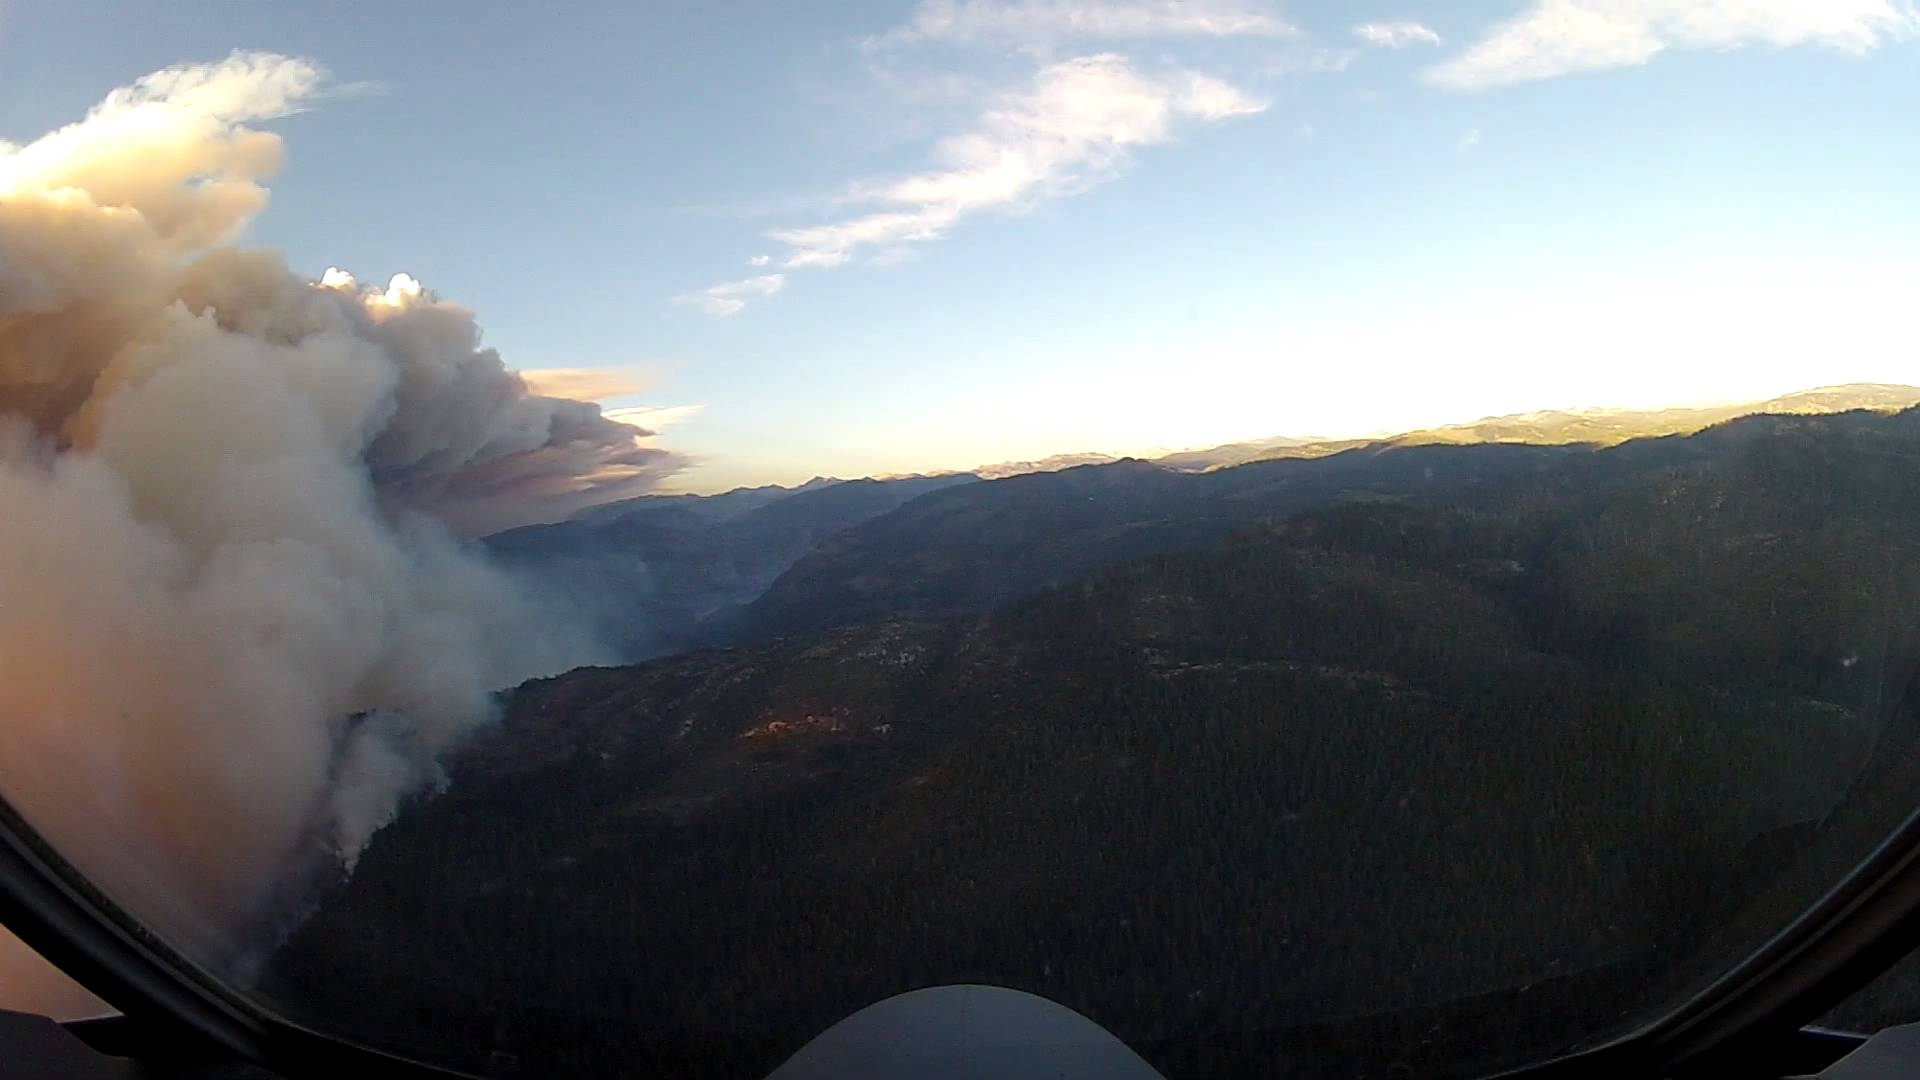 An Amazing Overhead View Of The Yosemite Fires